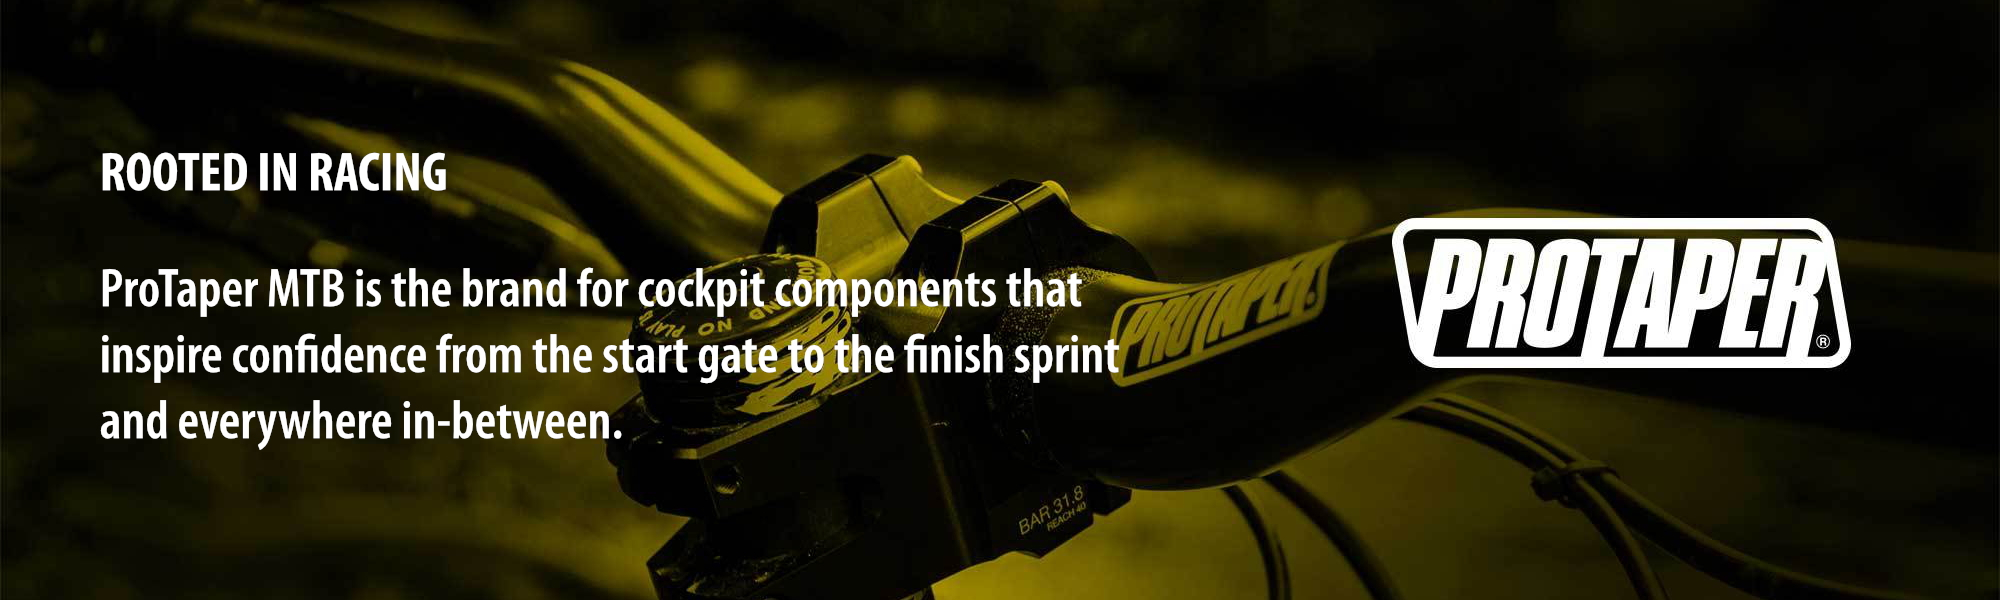 ROOTED IN RACING: ProTaper MTB is the brand for cockpit components that inspire confidence from the start gate to the finish sprint and everywhere in-between.